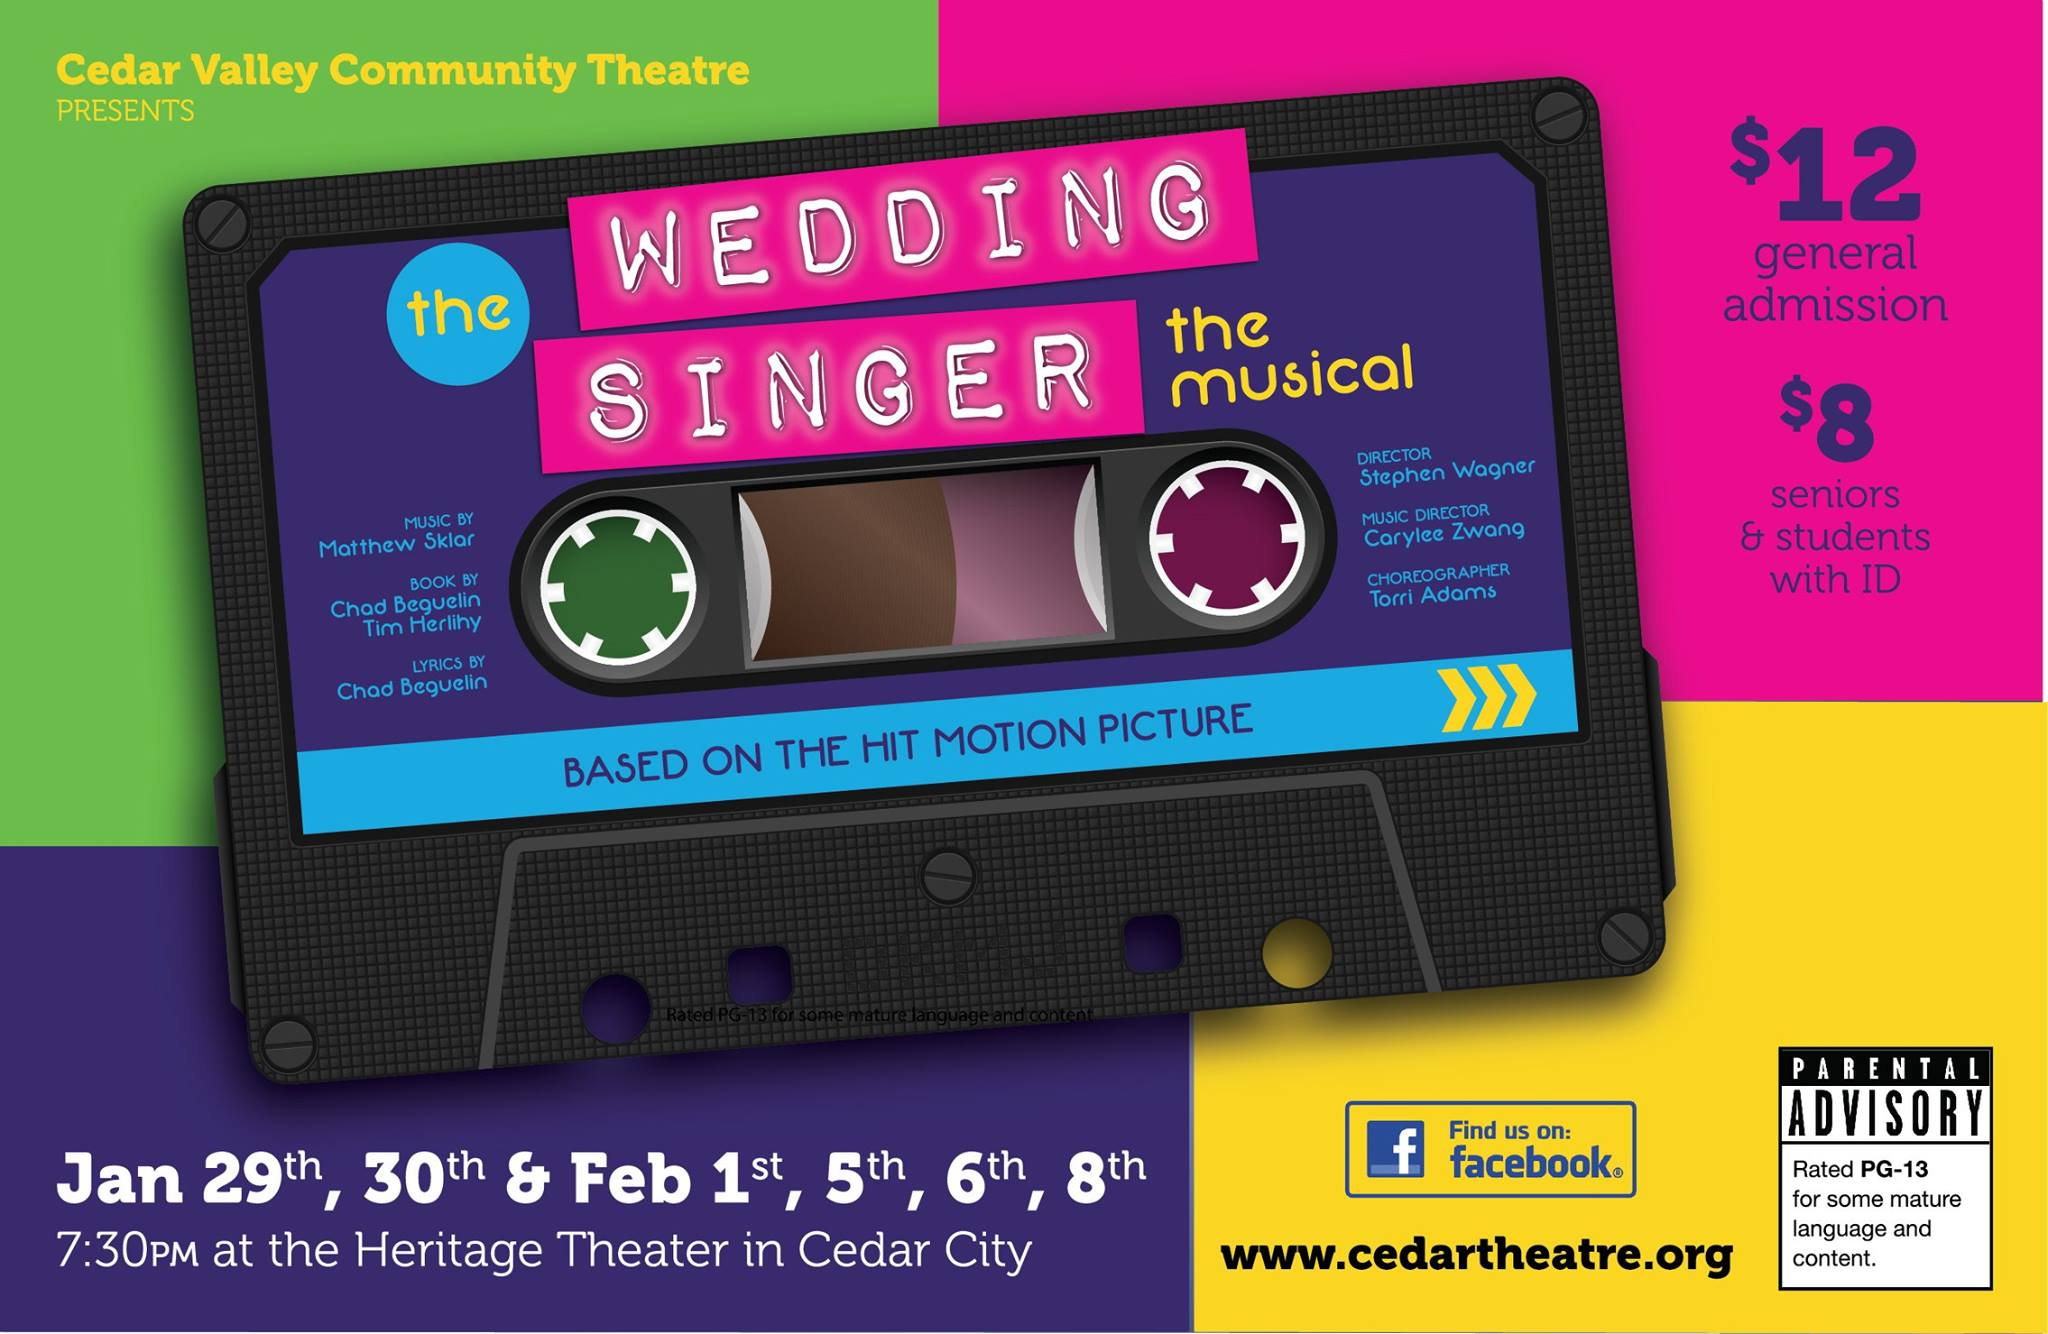 Flier For The Wedding Singer Musical Image Courtesy Of Cedar Valley